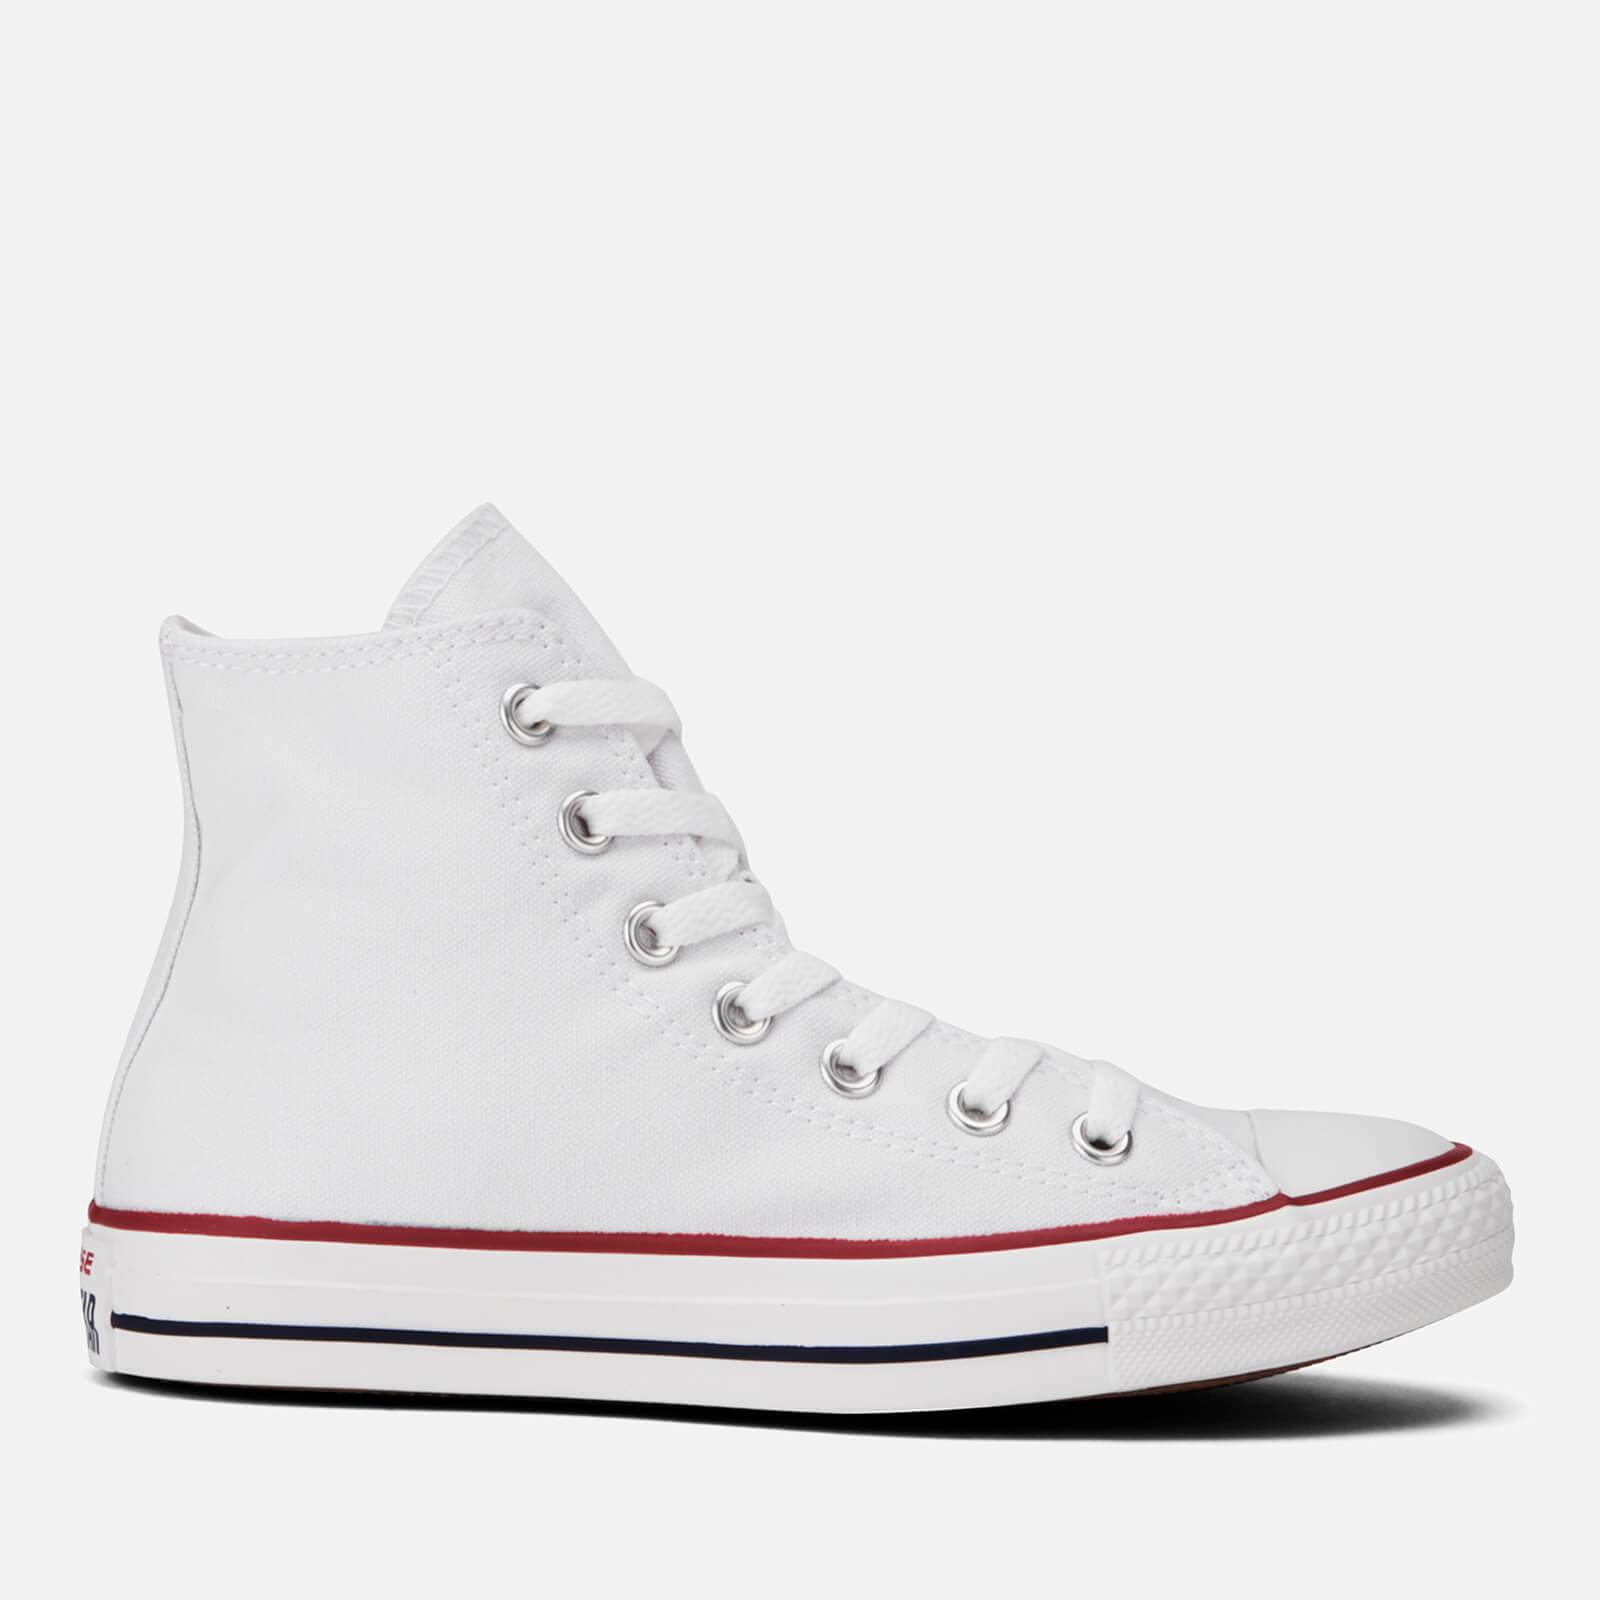 Converse Chuck Taylor All Star Hi-Top Trainers - Optical White - UK 9